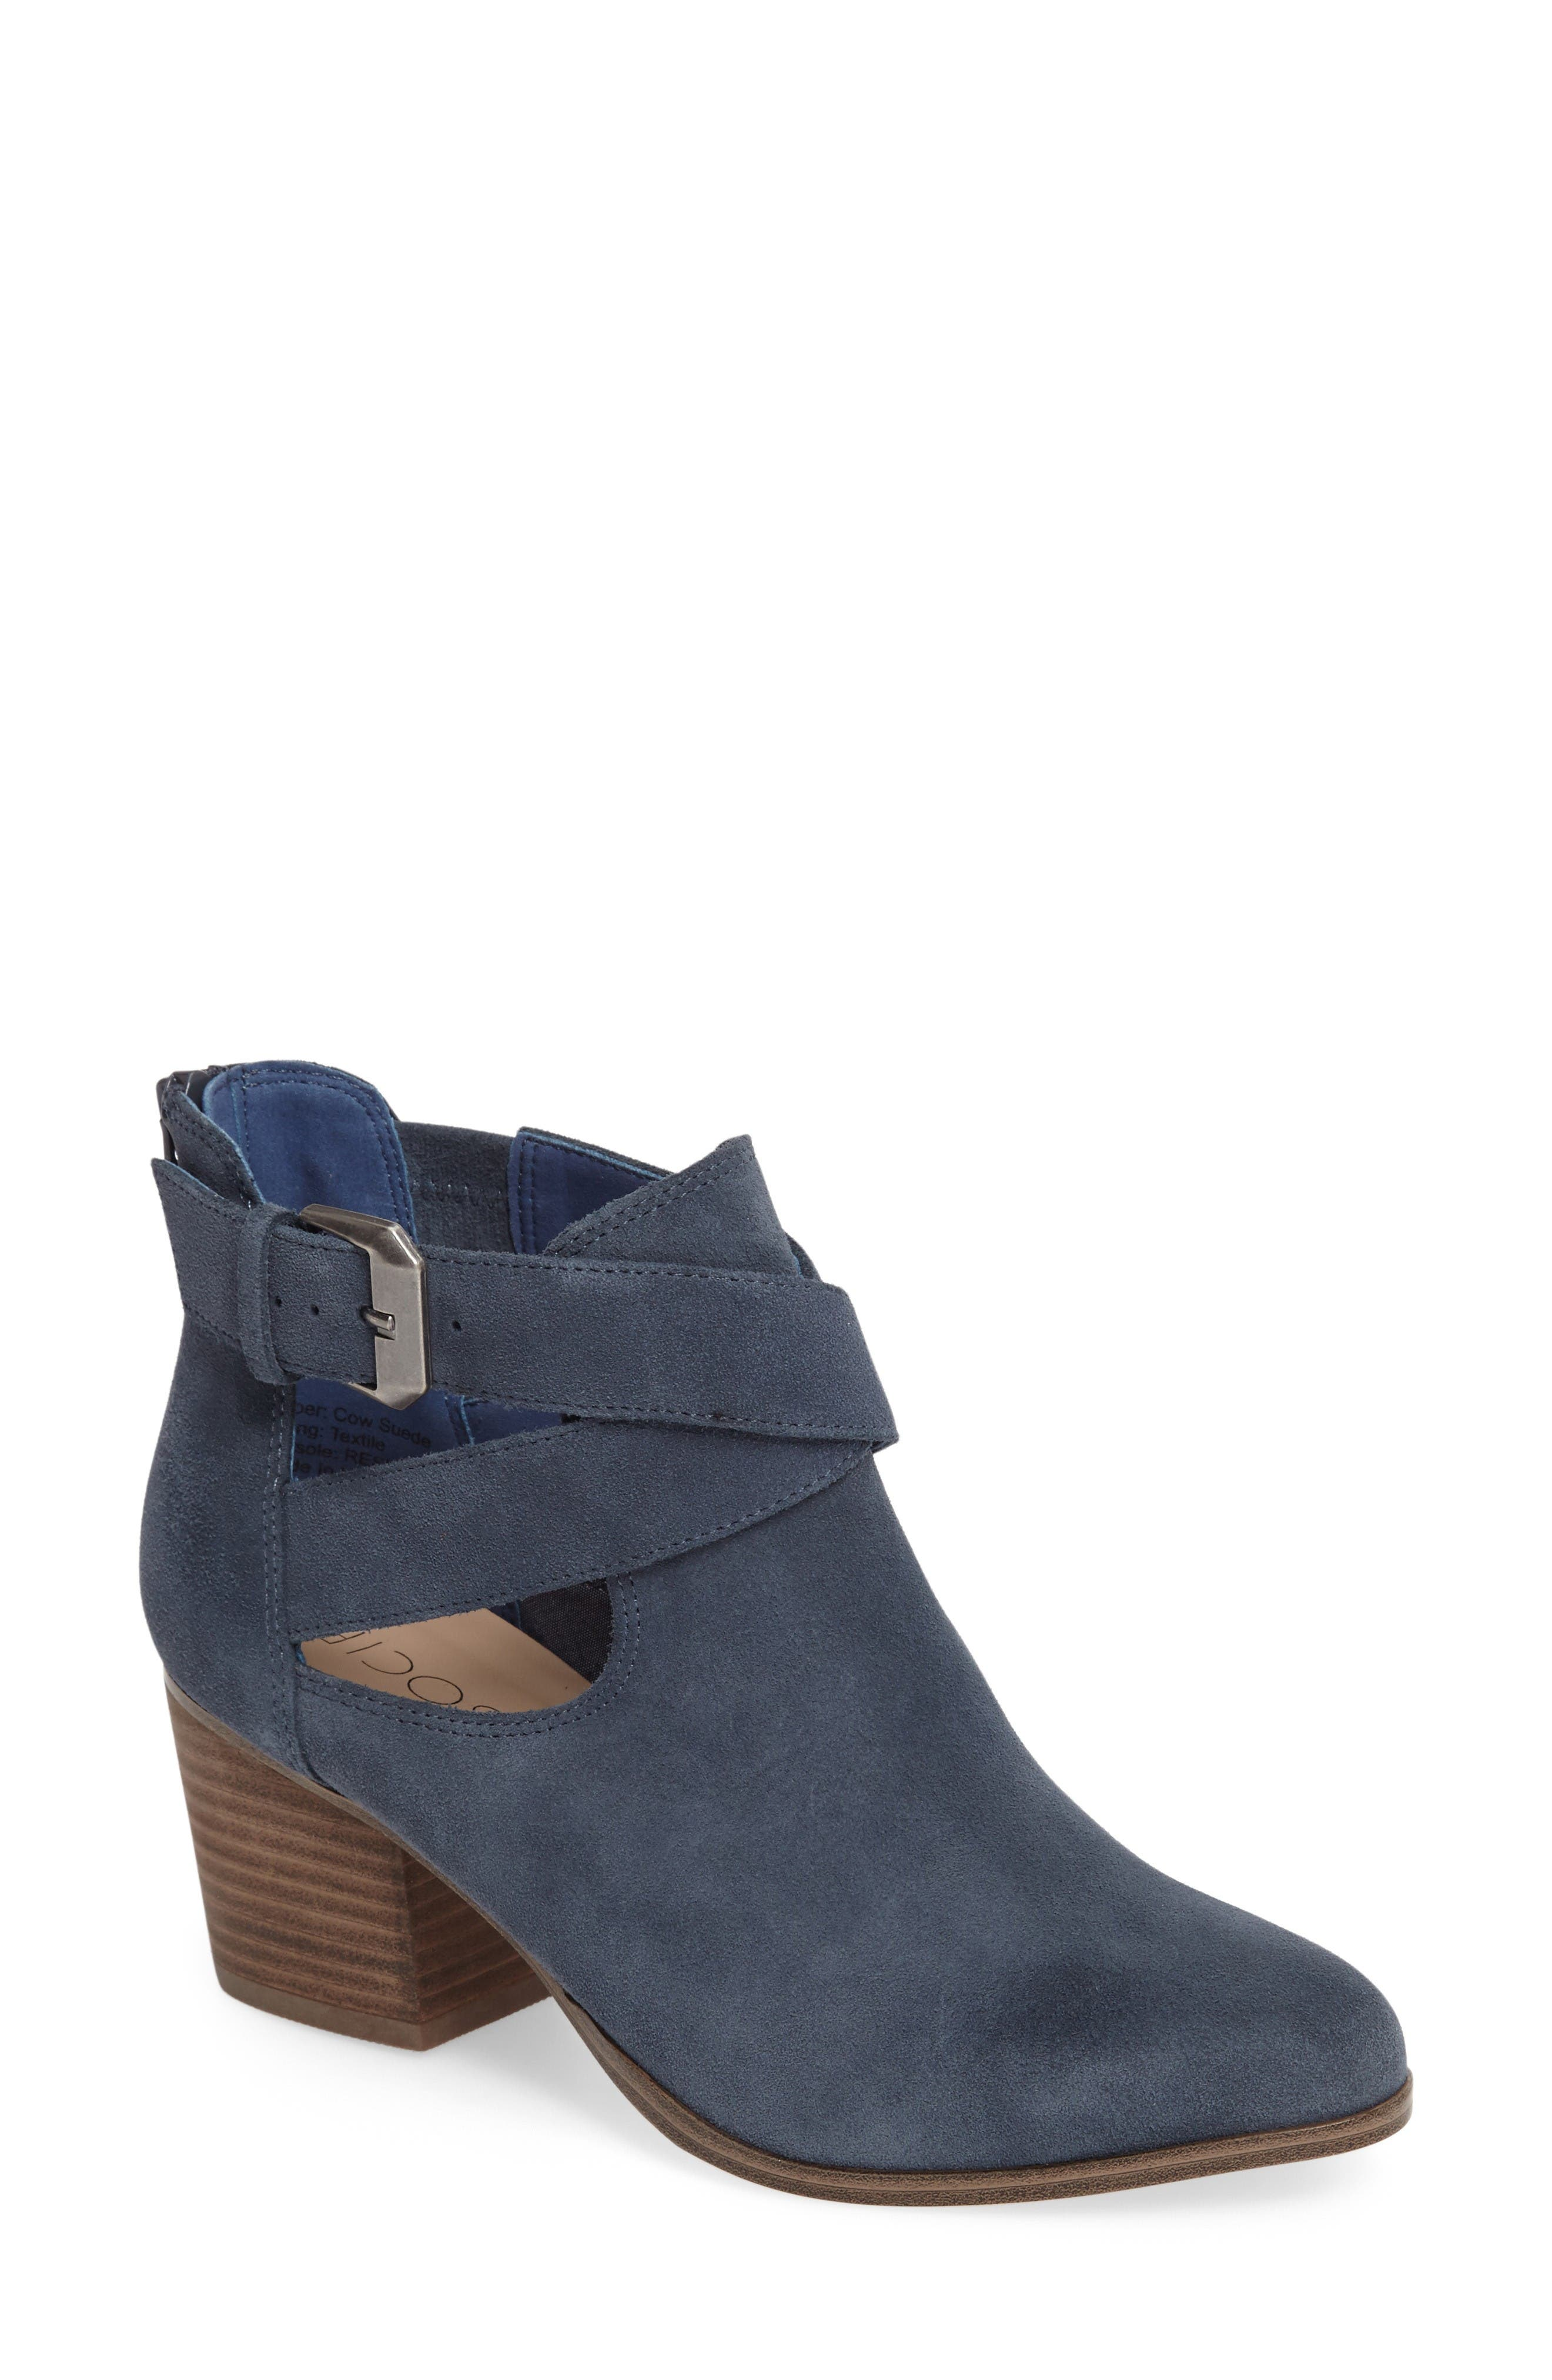 Main Image - Sole Society Azure Bootie (Women)